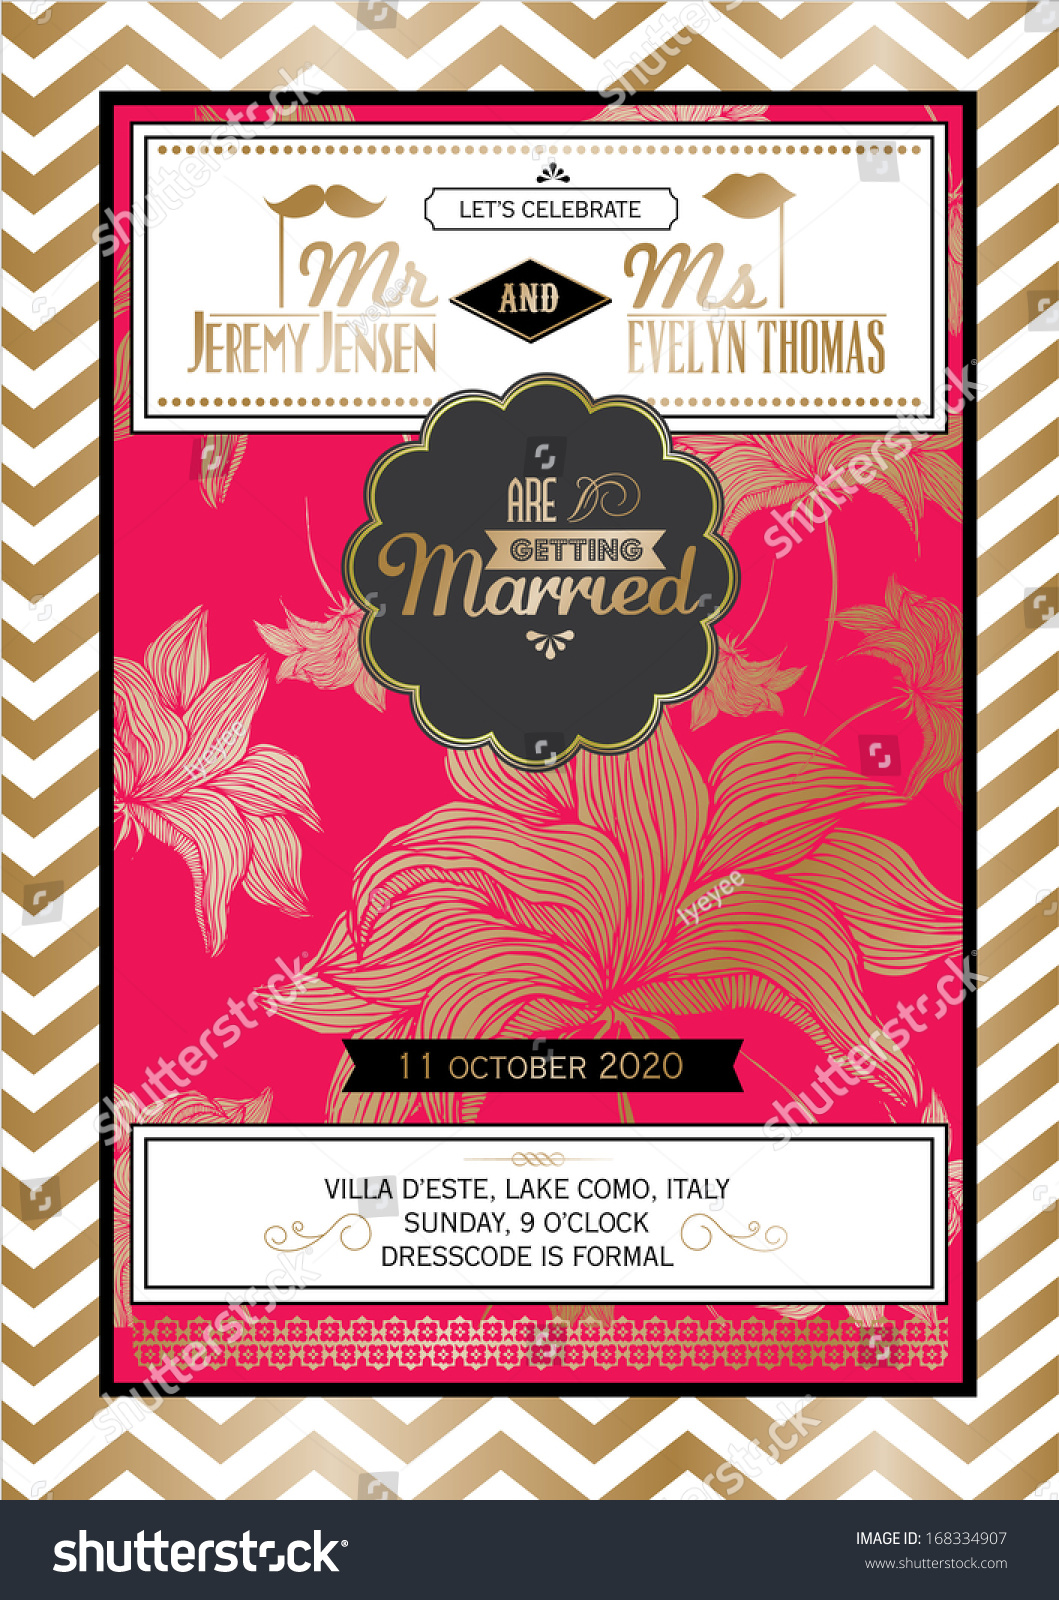 Modern Vintage Floral Wedding Invitation Card Stock Vector (Royalty ...